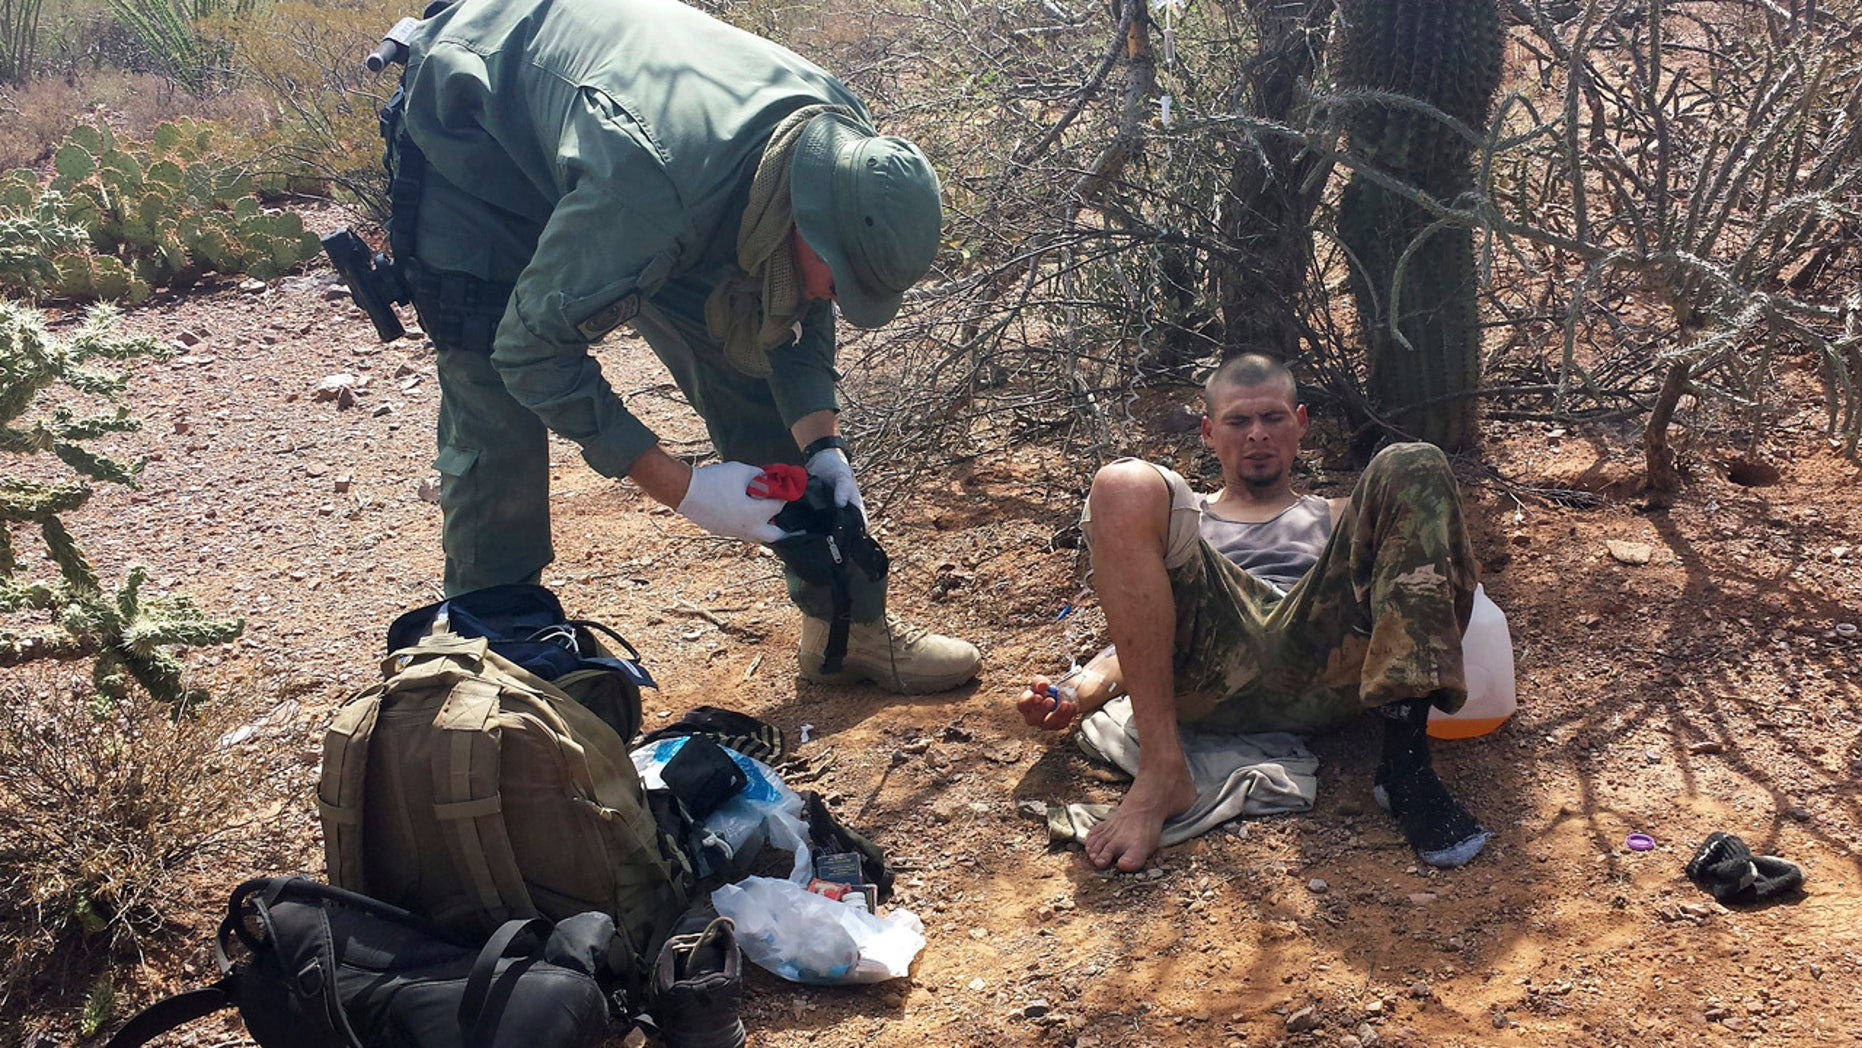 June 25, 2014:  An unidentified U.S. Border Patrol agent, left, helps an immigrant, including setting up intravenous fluid replacement for dehydration, near Sells, Ariz.